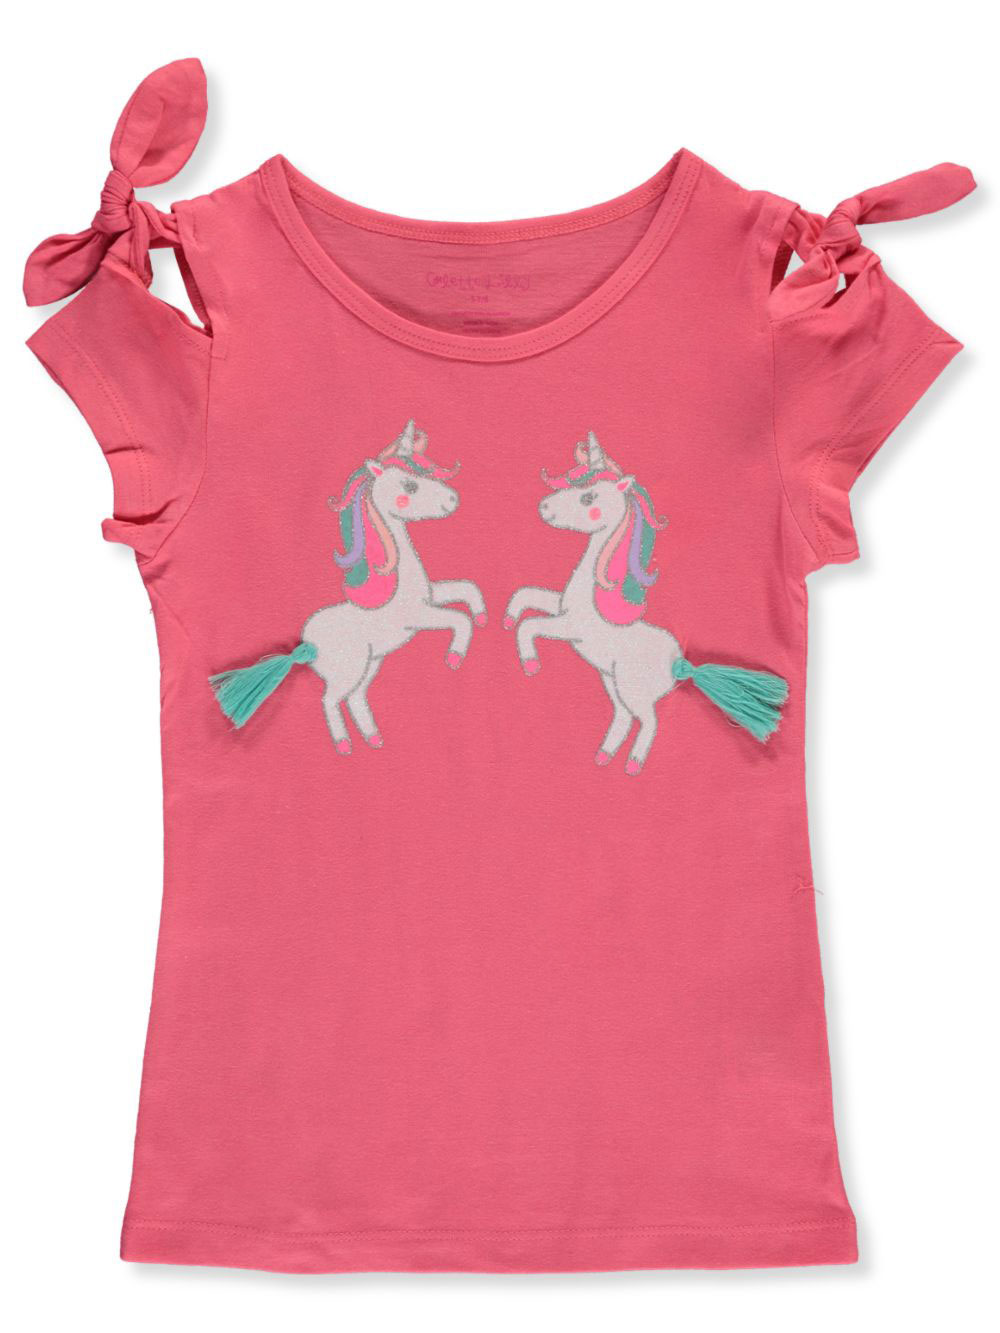 Girls Coral Fashion Tops